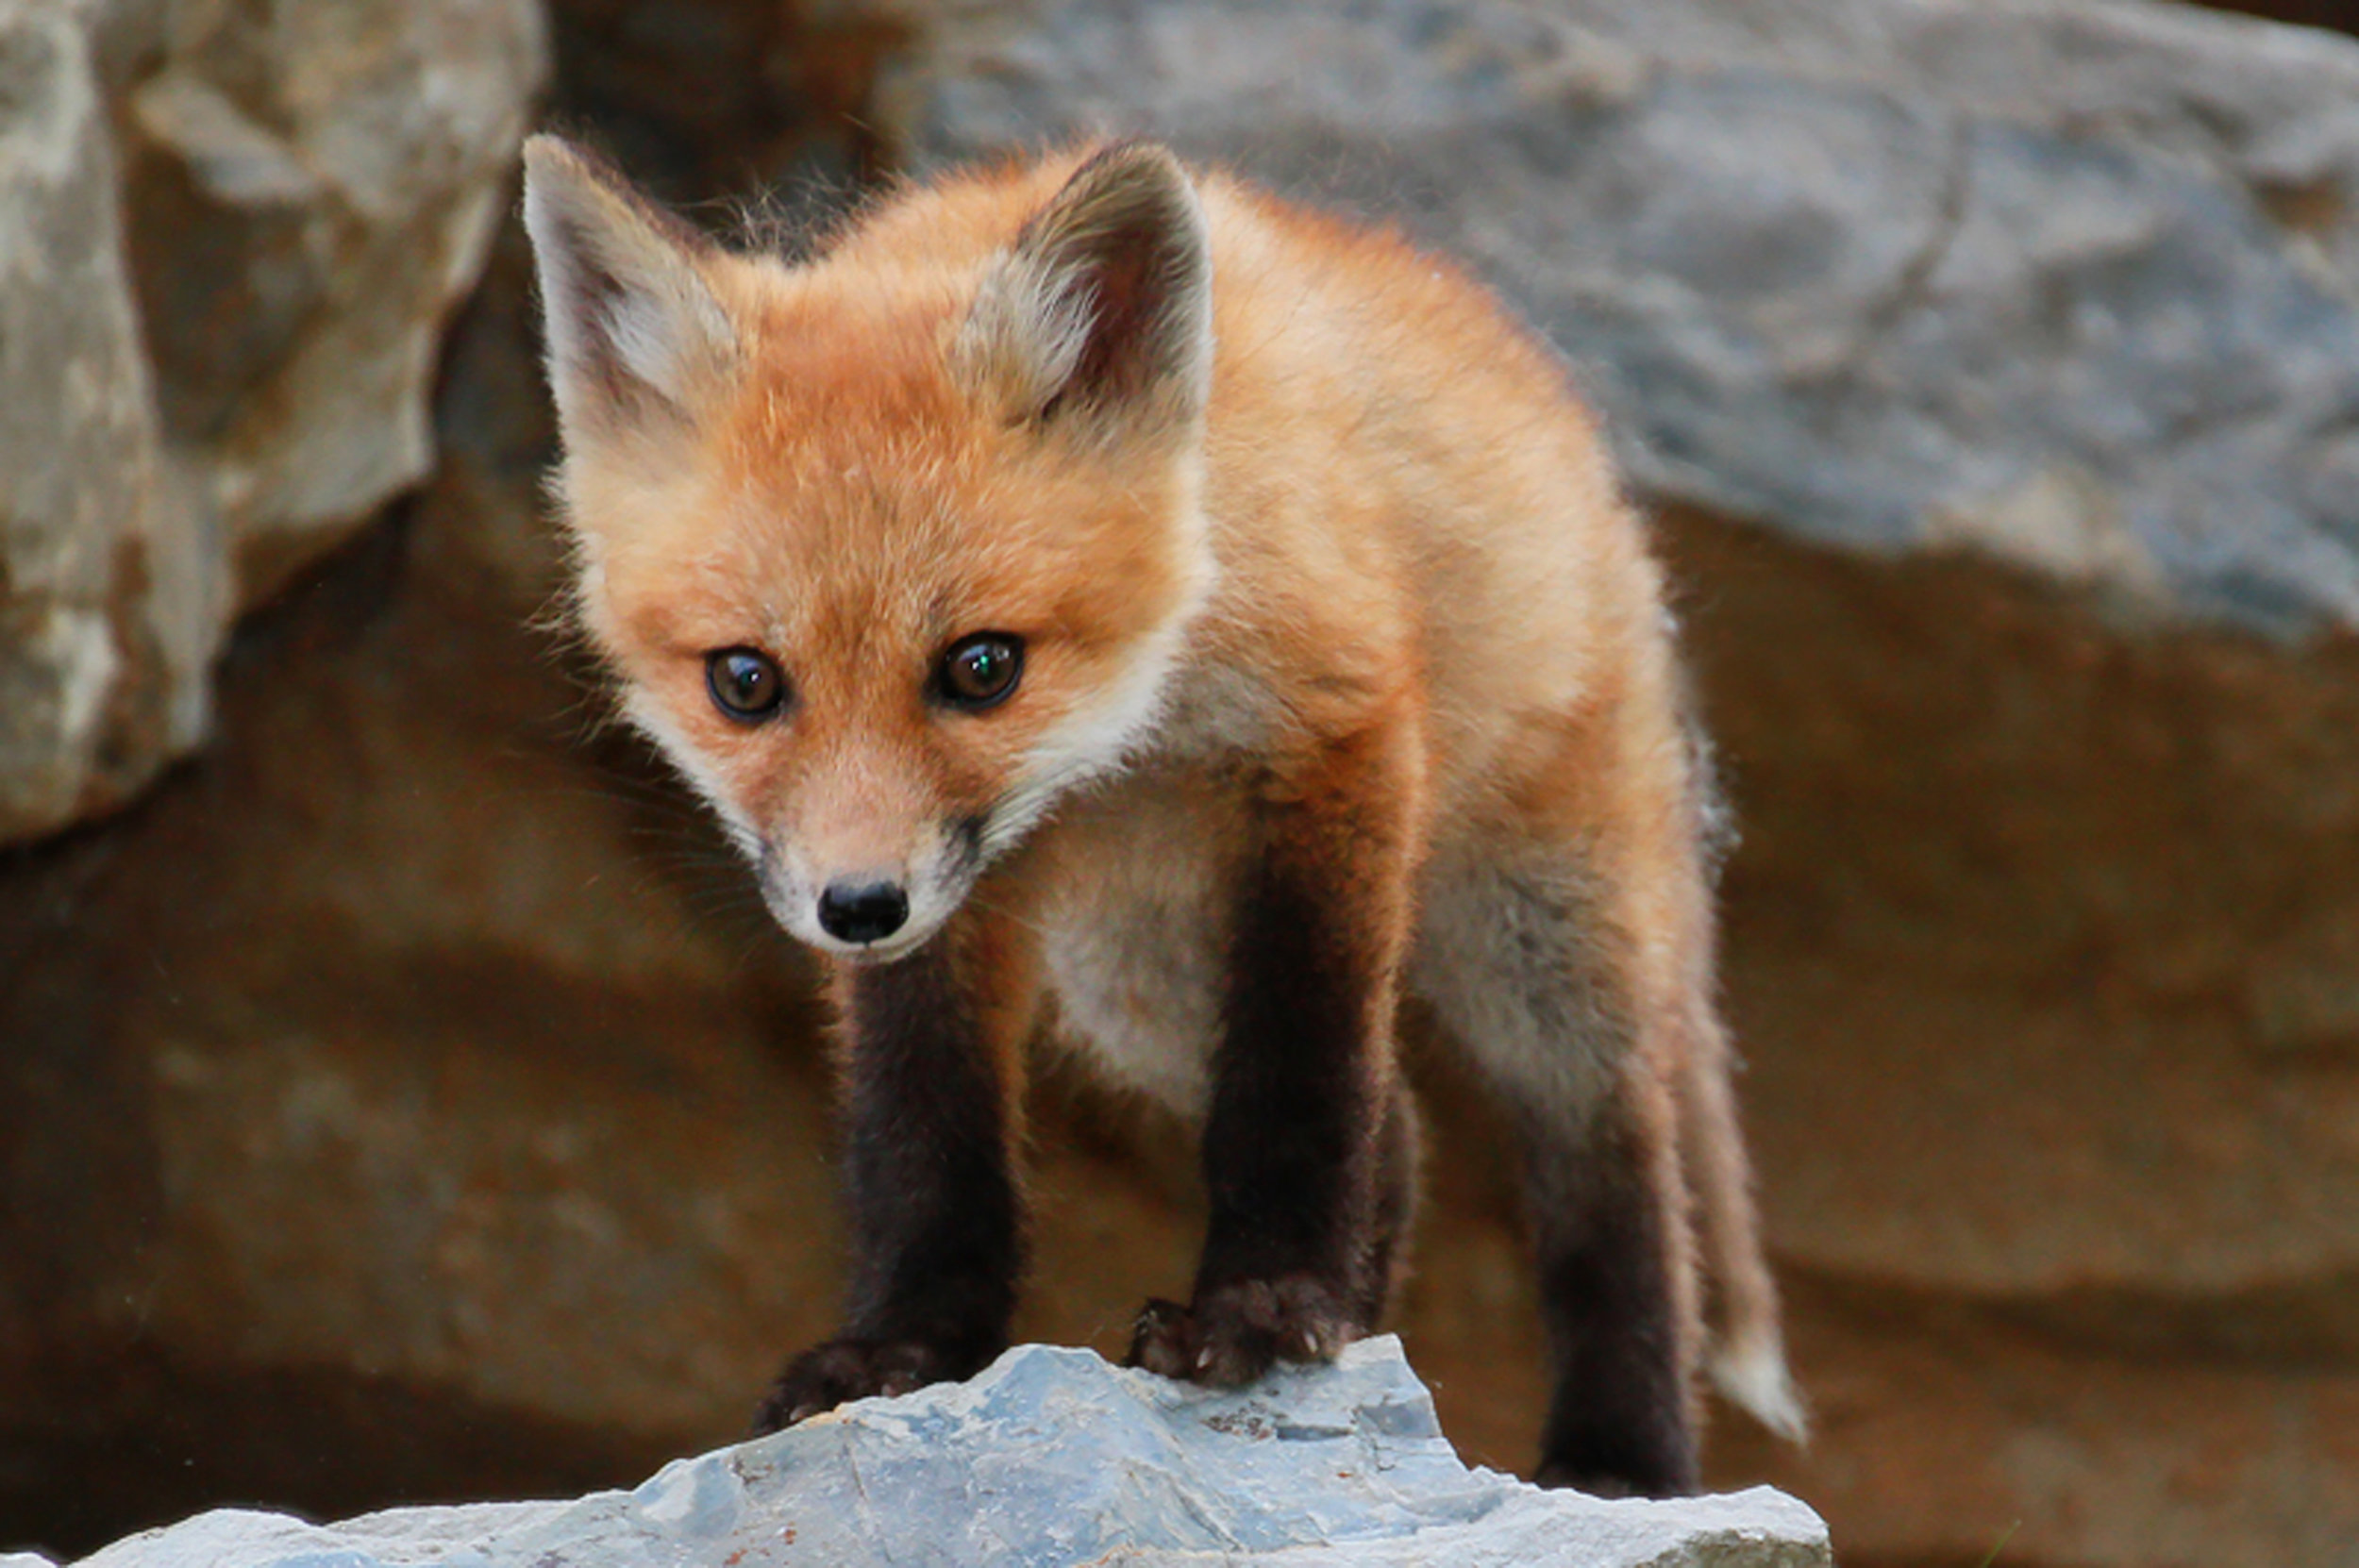 While not commonly thought of as an arkansas native, the state does boast populations of red foxes along its southern waters.